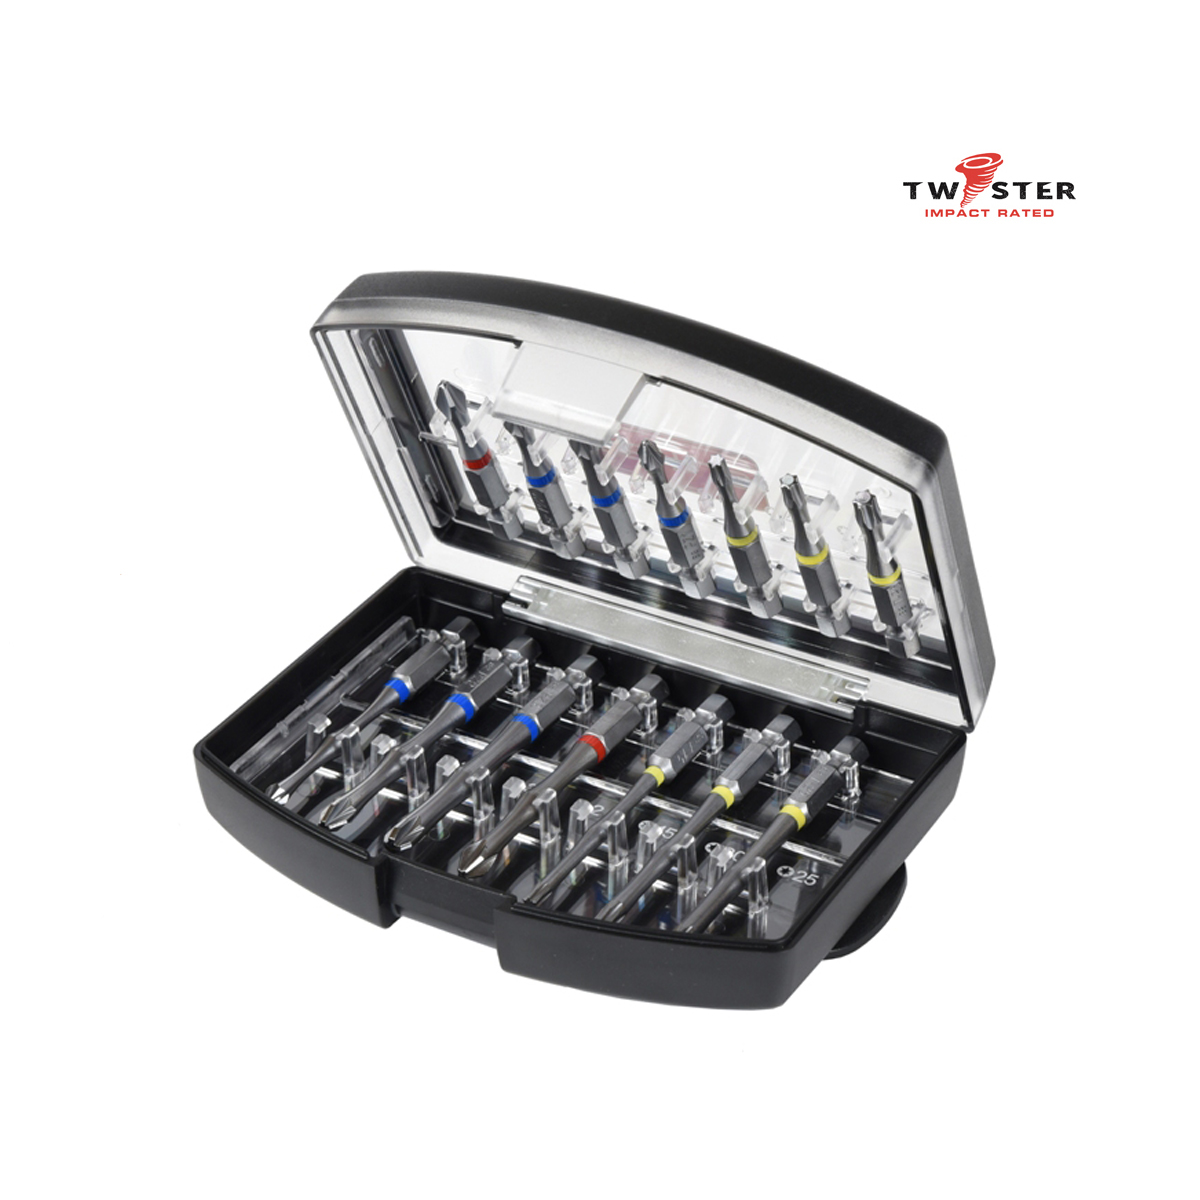 14 Piece Impact Rated Screwdriver Set